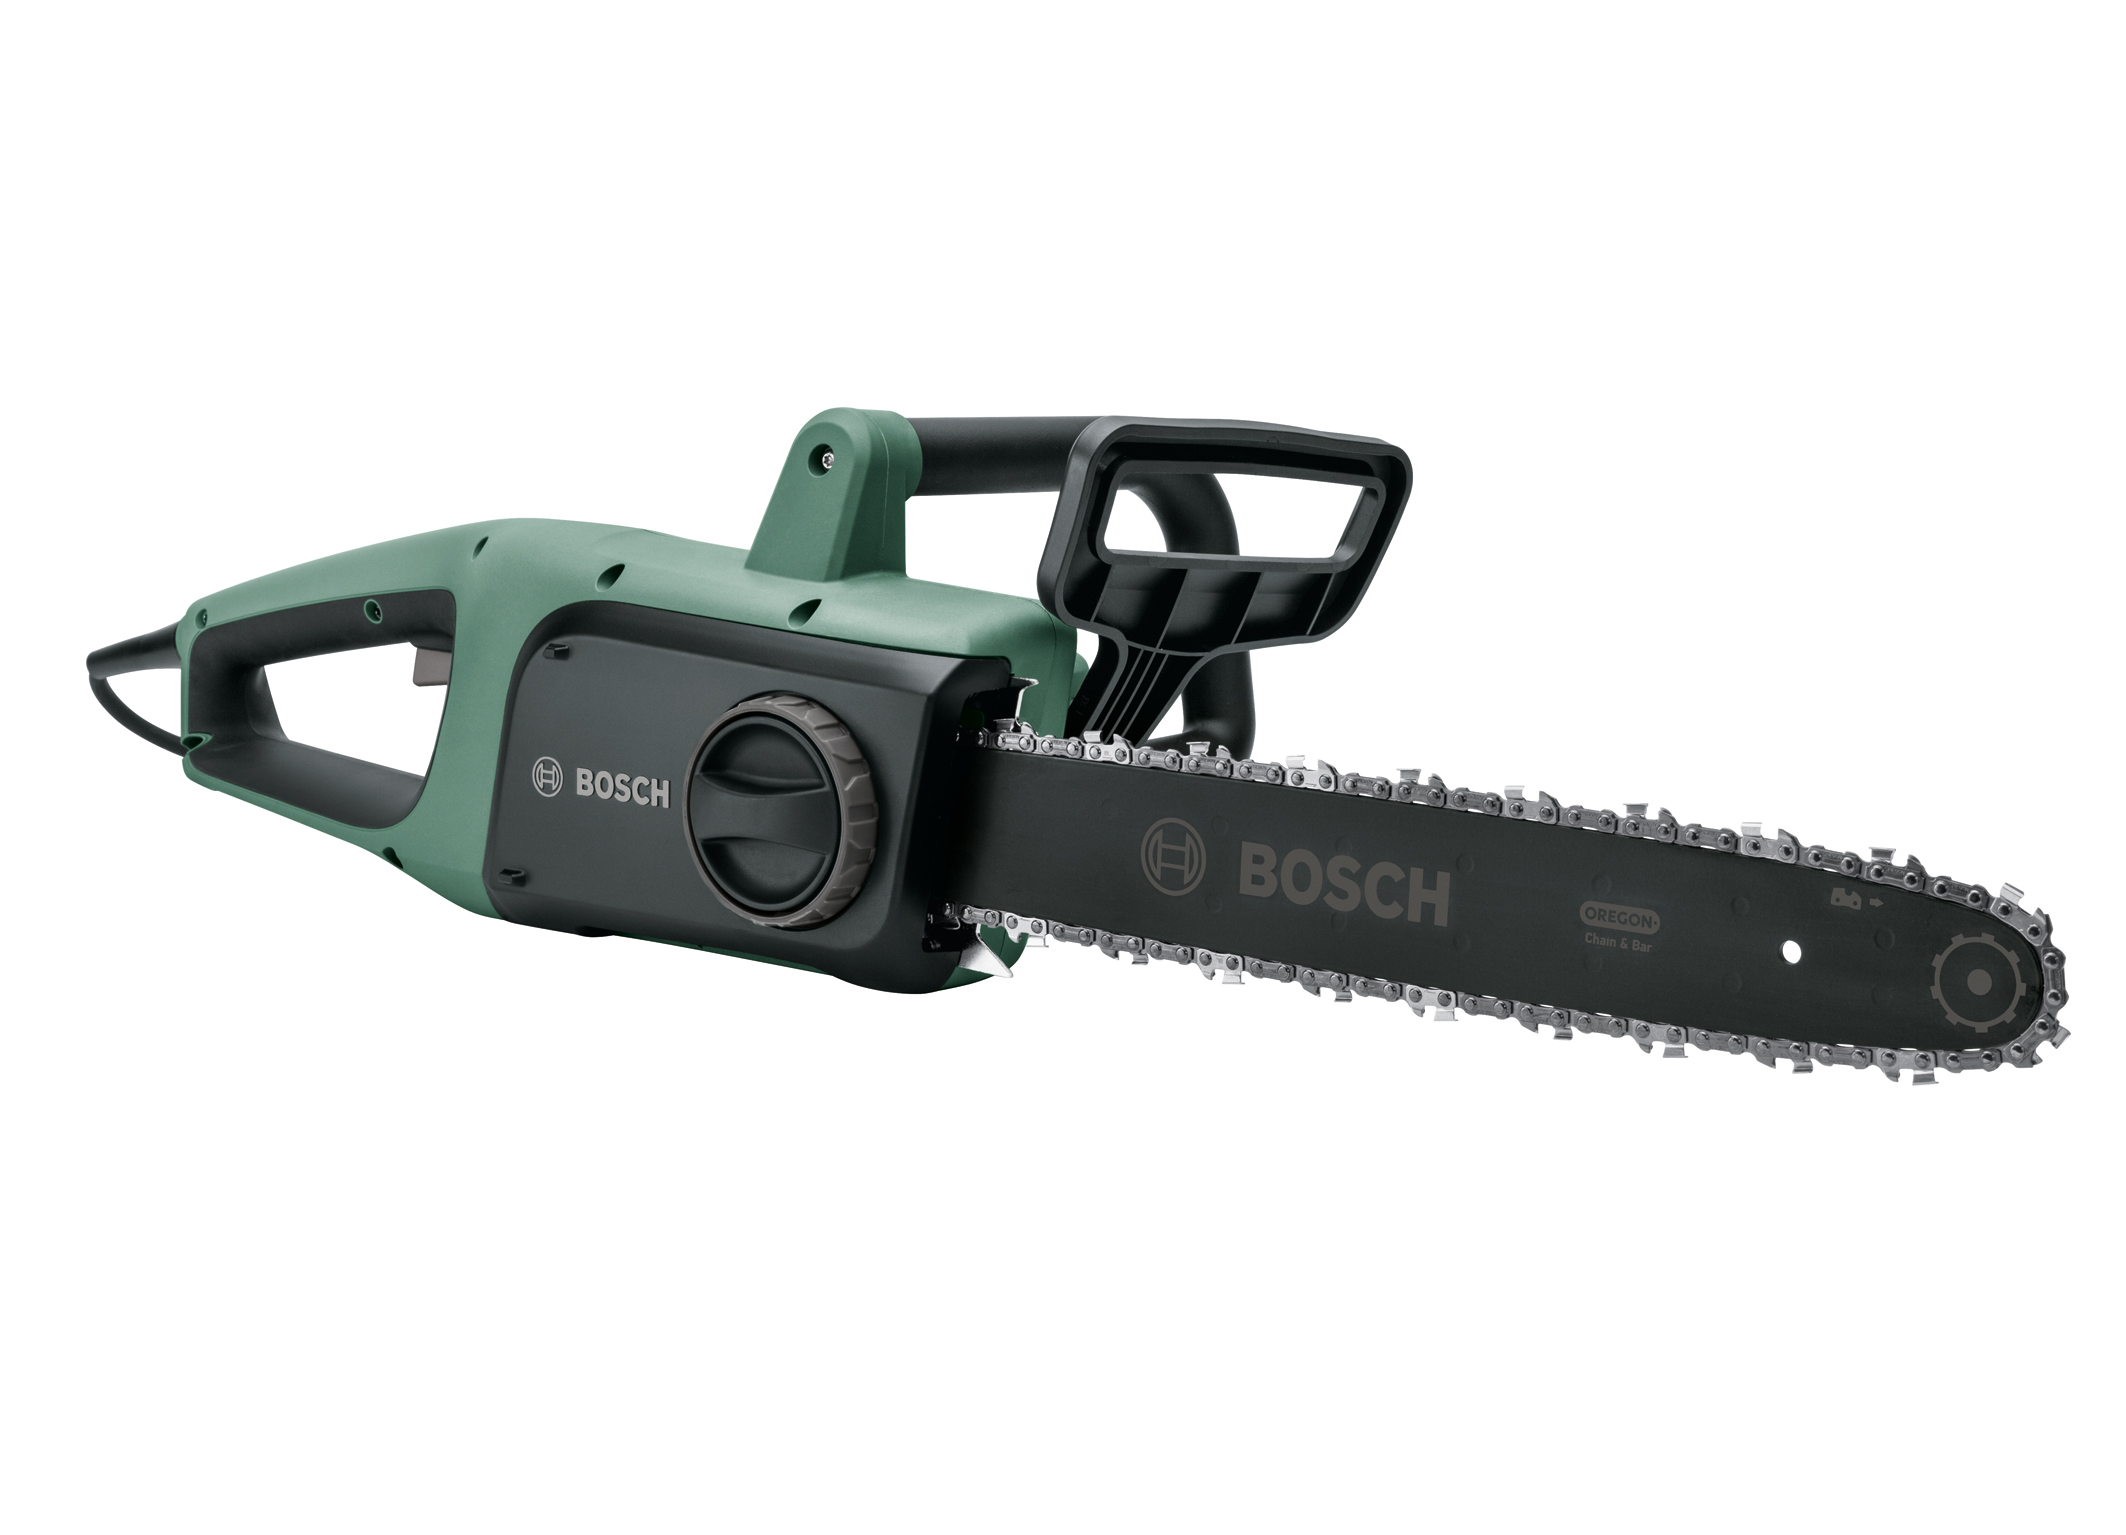 Clean, fast and convenient: Two new chainsaws from Bosch